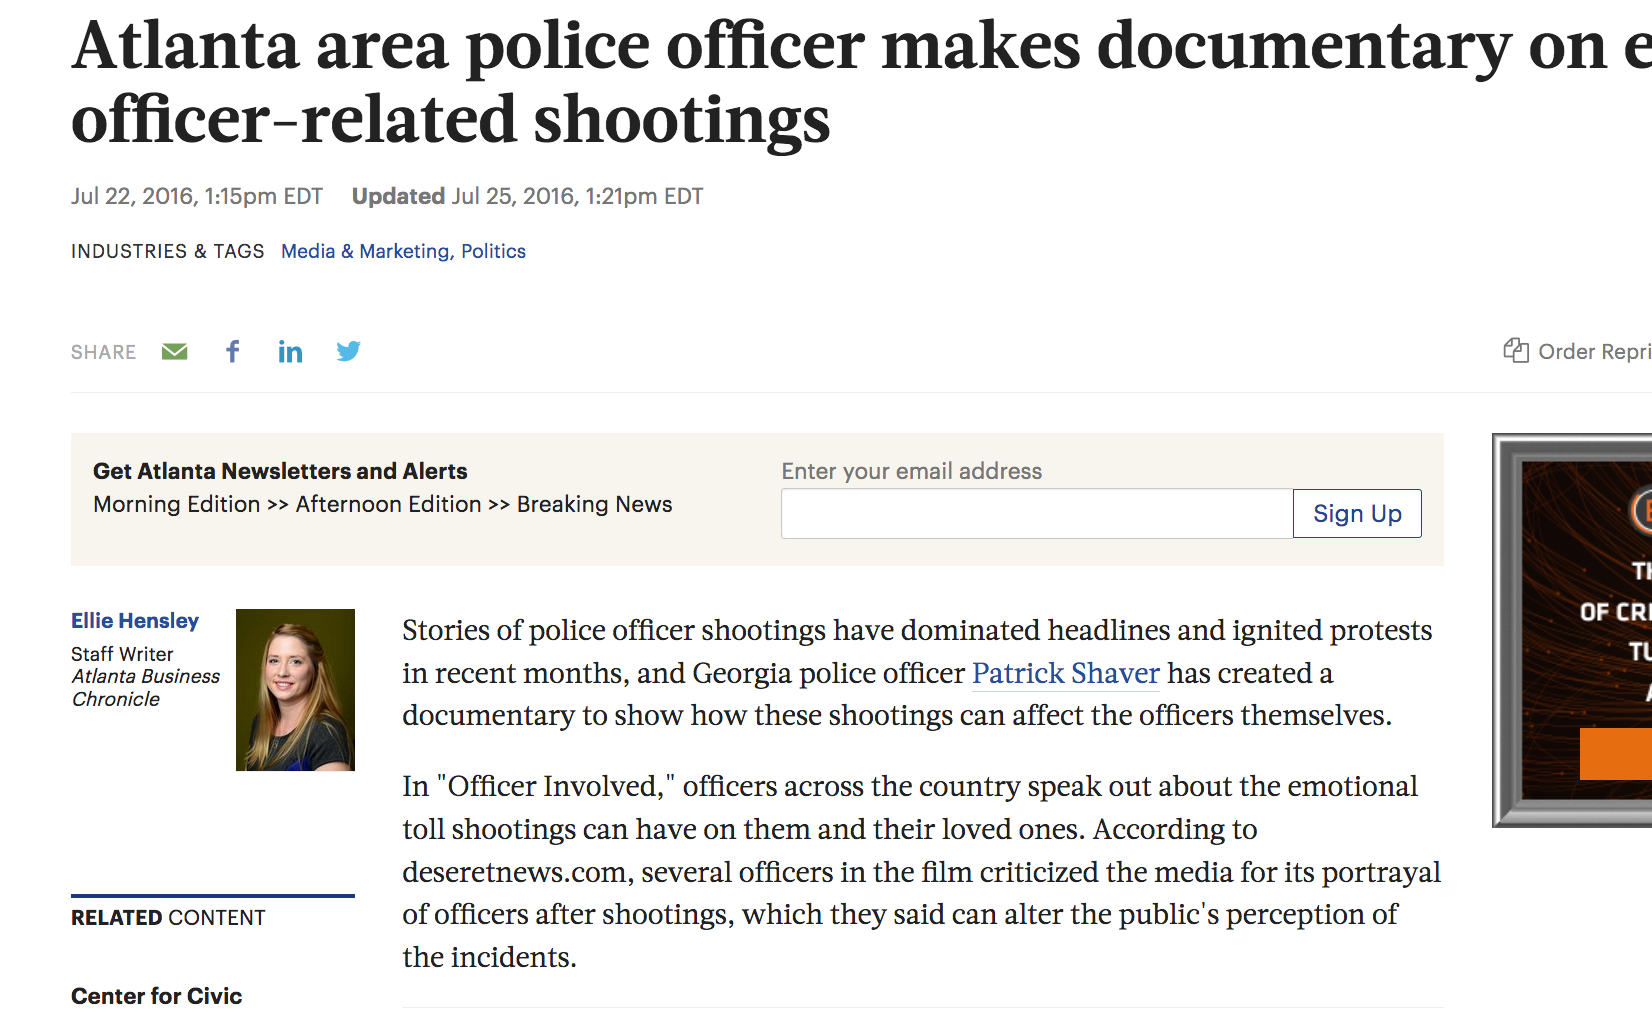 Atlanta area officer makes documentary on effects of officer-related shootings.   Atlanta Business Chronicle